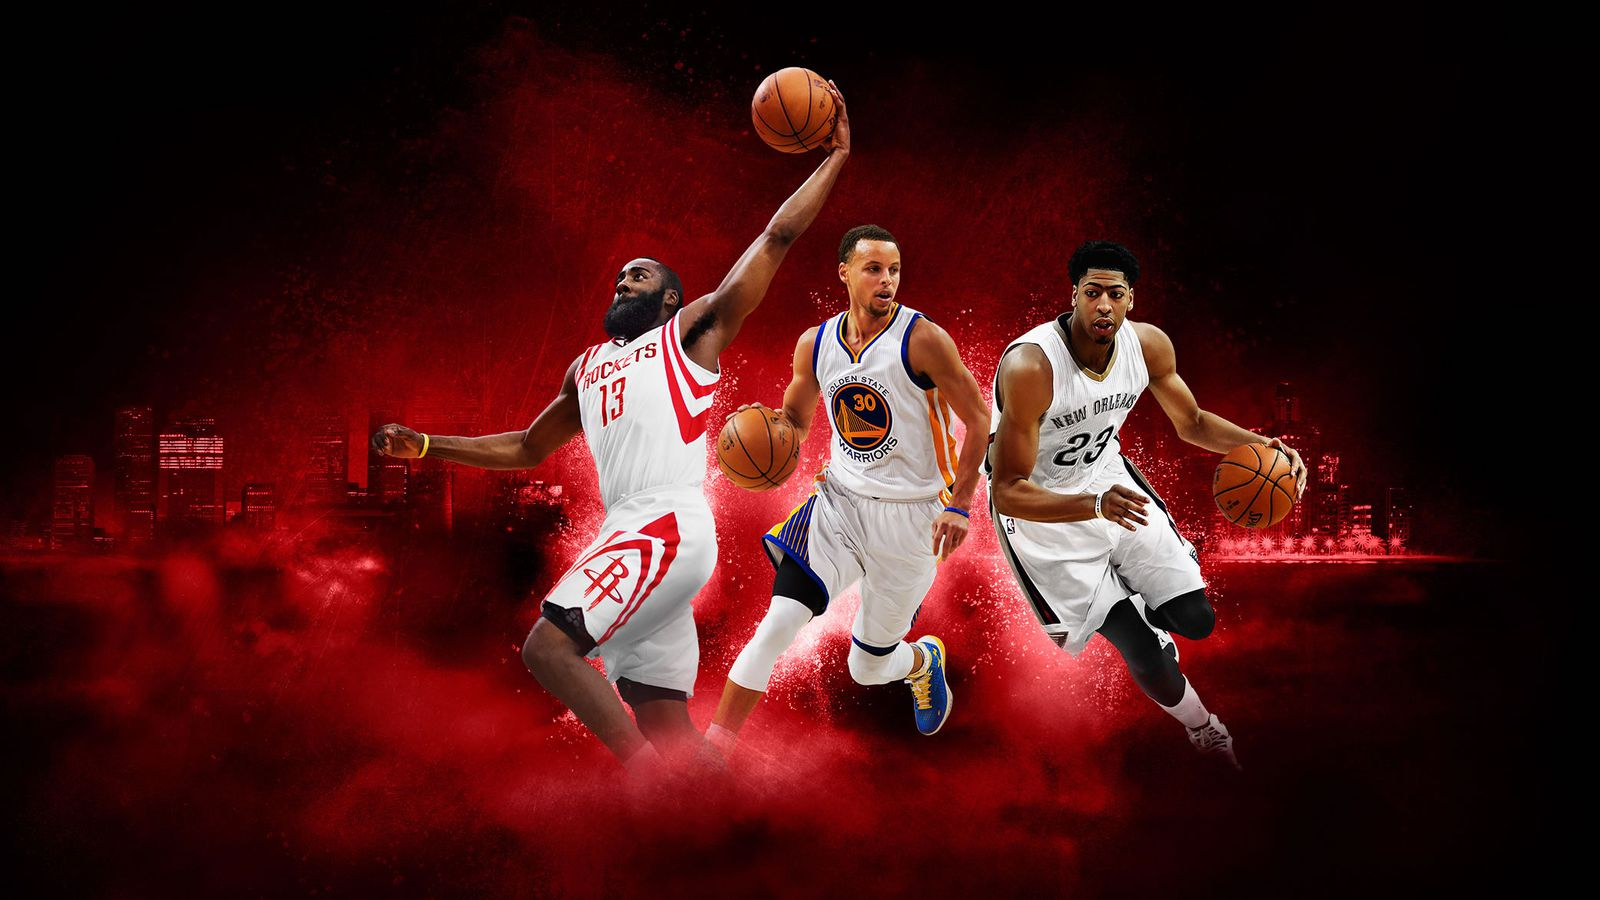 mmorog will help you enjoy your nba 2k16 game